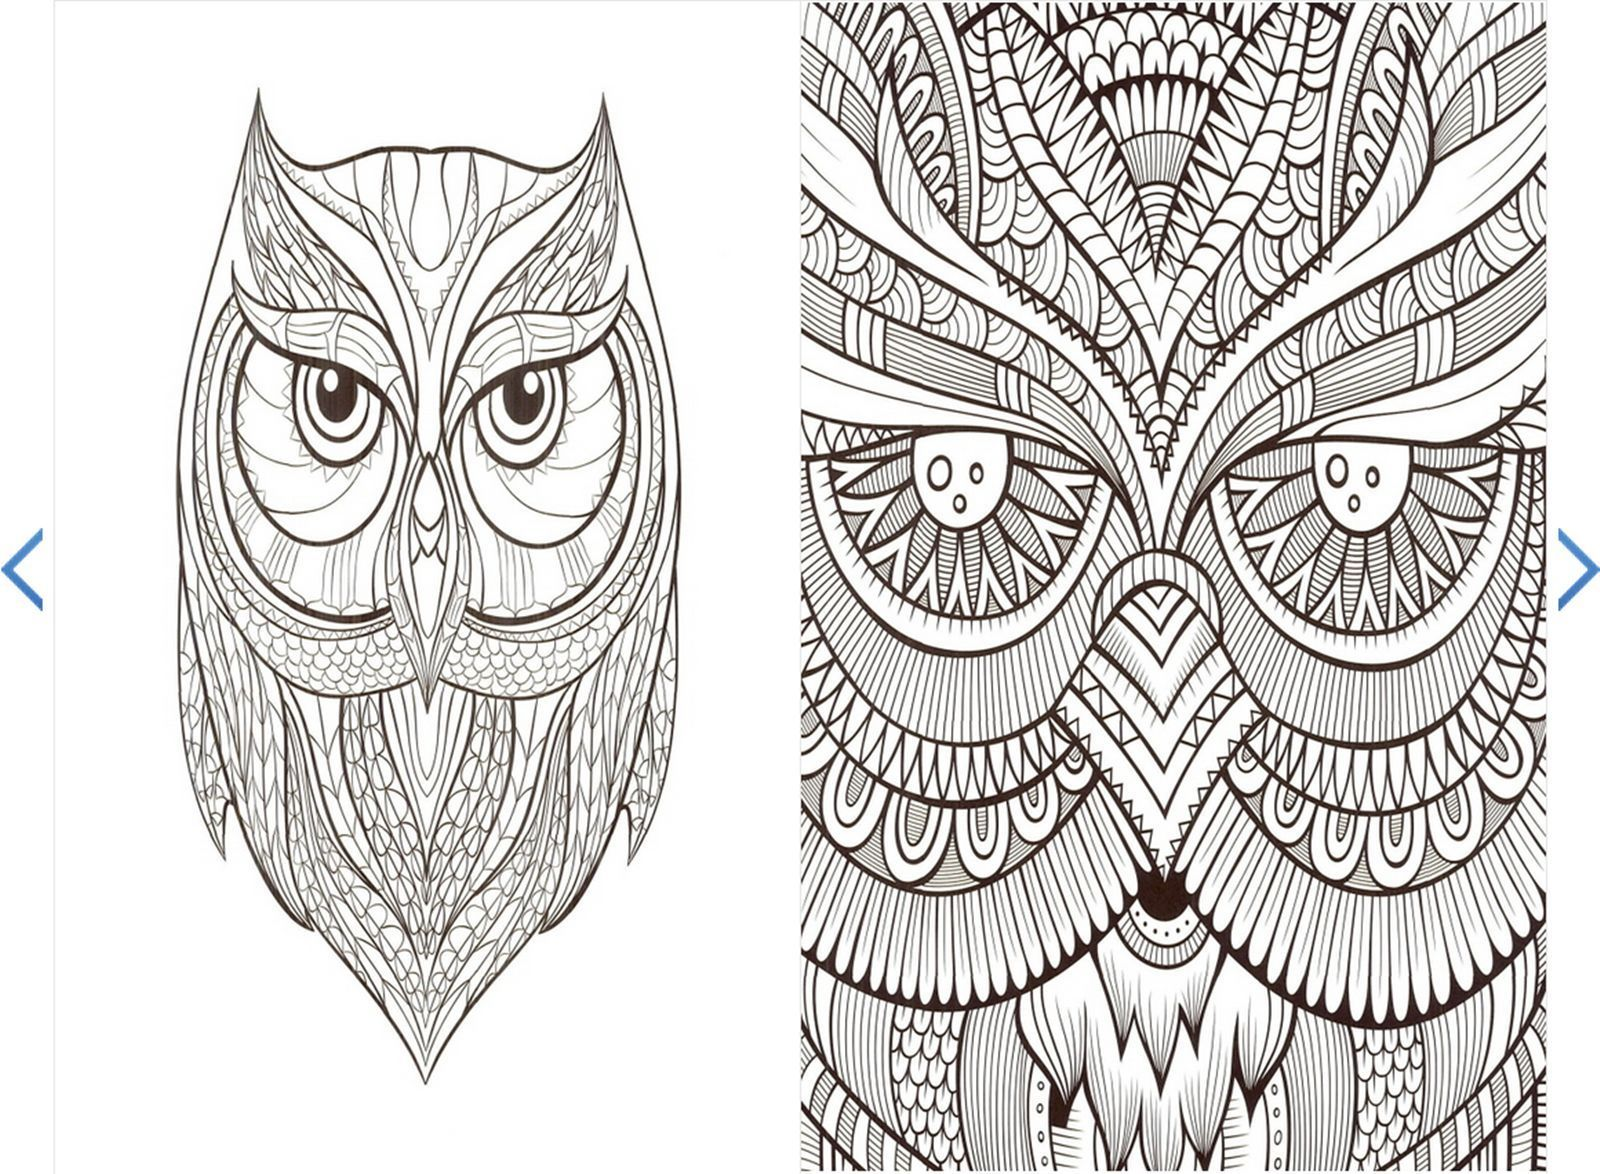 Owl Forest Coloring Book For Adult Anti Stress Art Therapy Noree Salaam Dovile